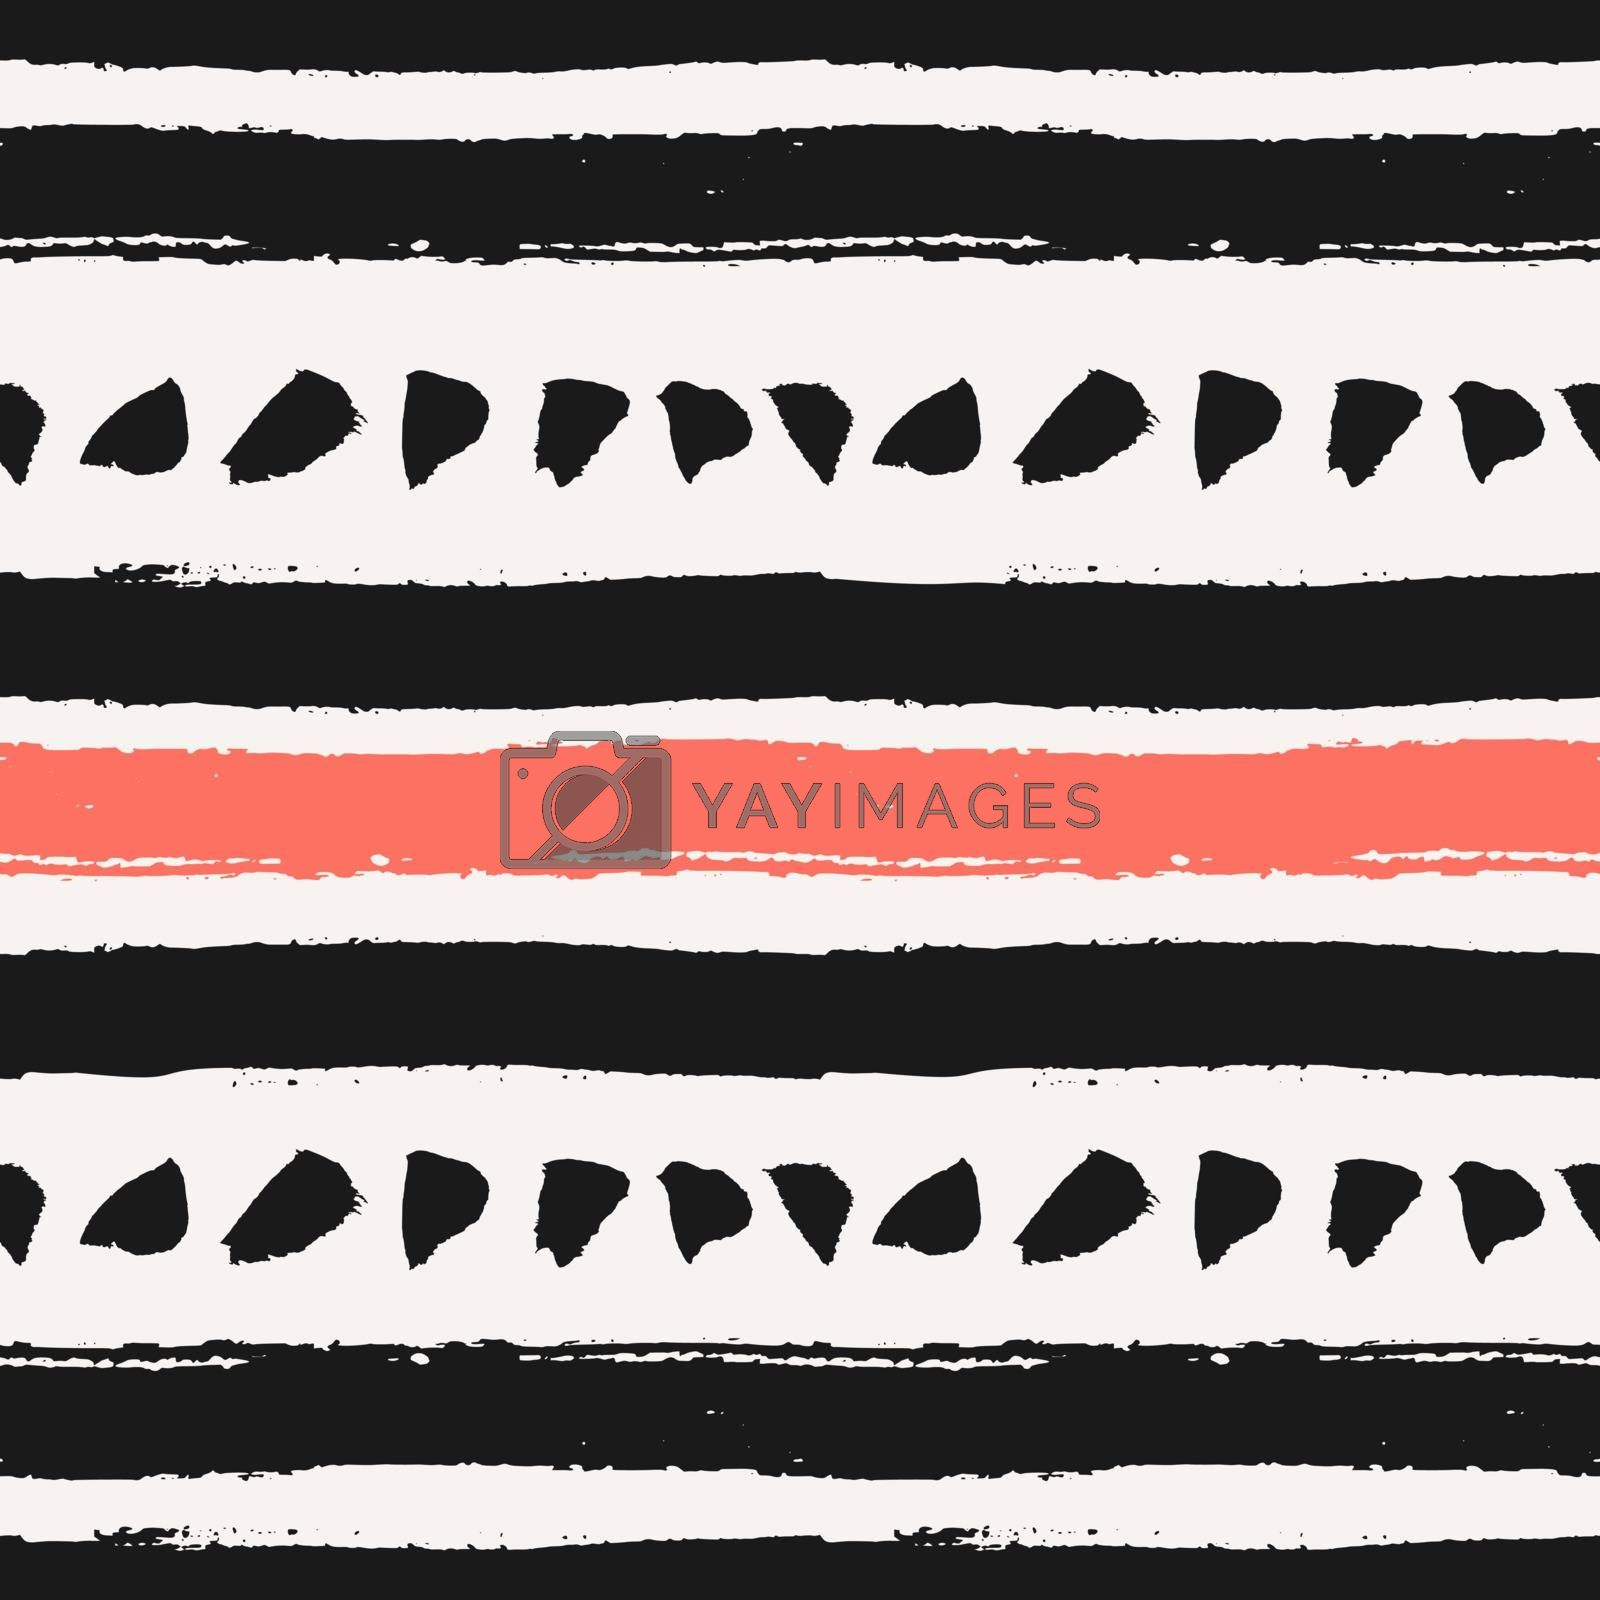 Hand drawn brush strokes seamless pattern. Abstract hand painted repeat texture in black and coral red.